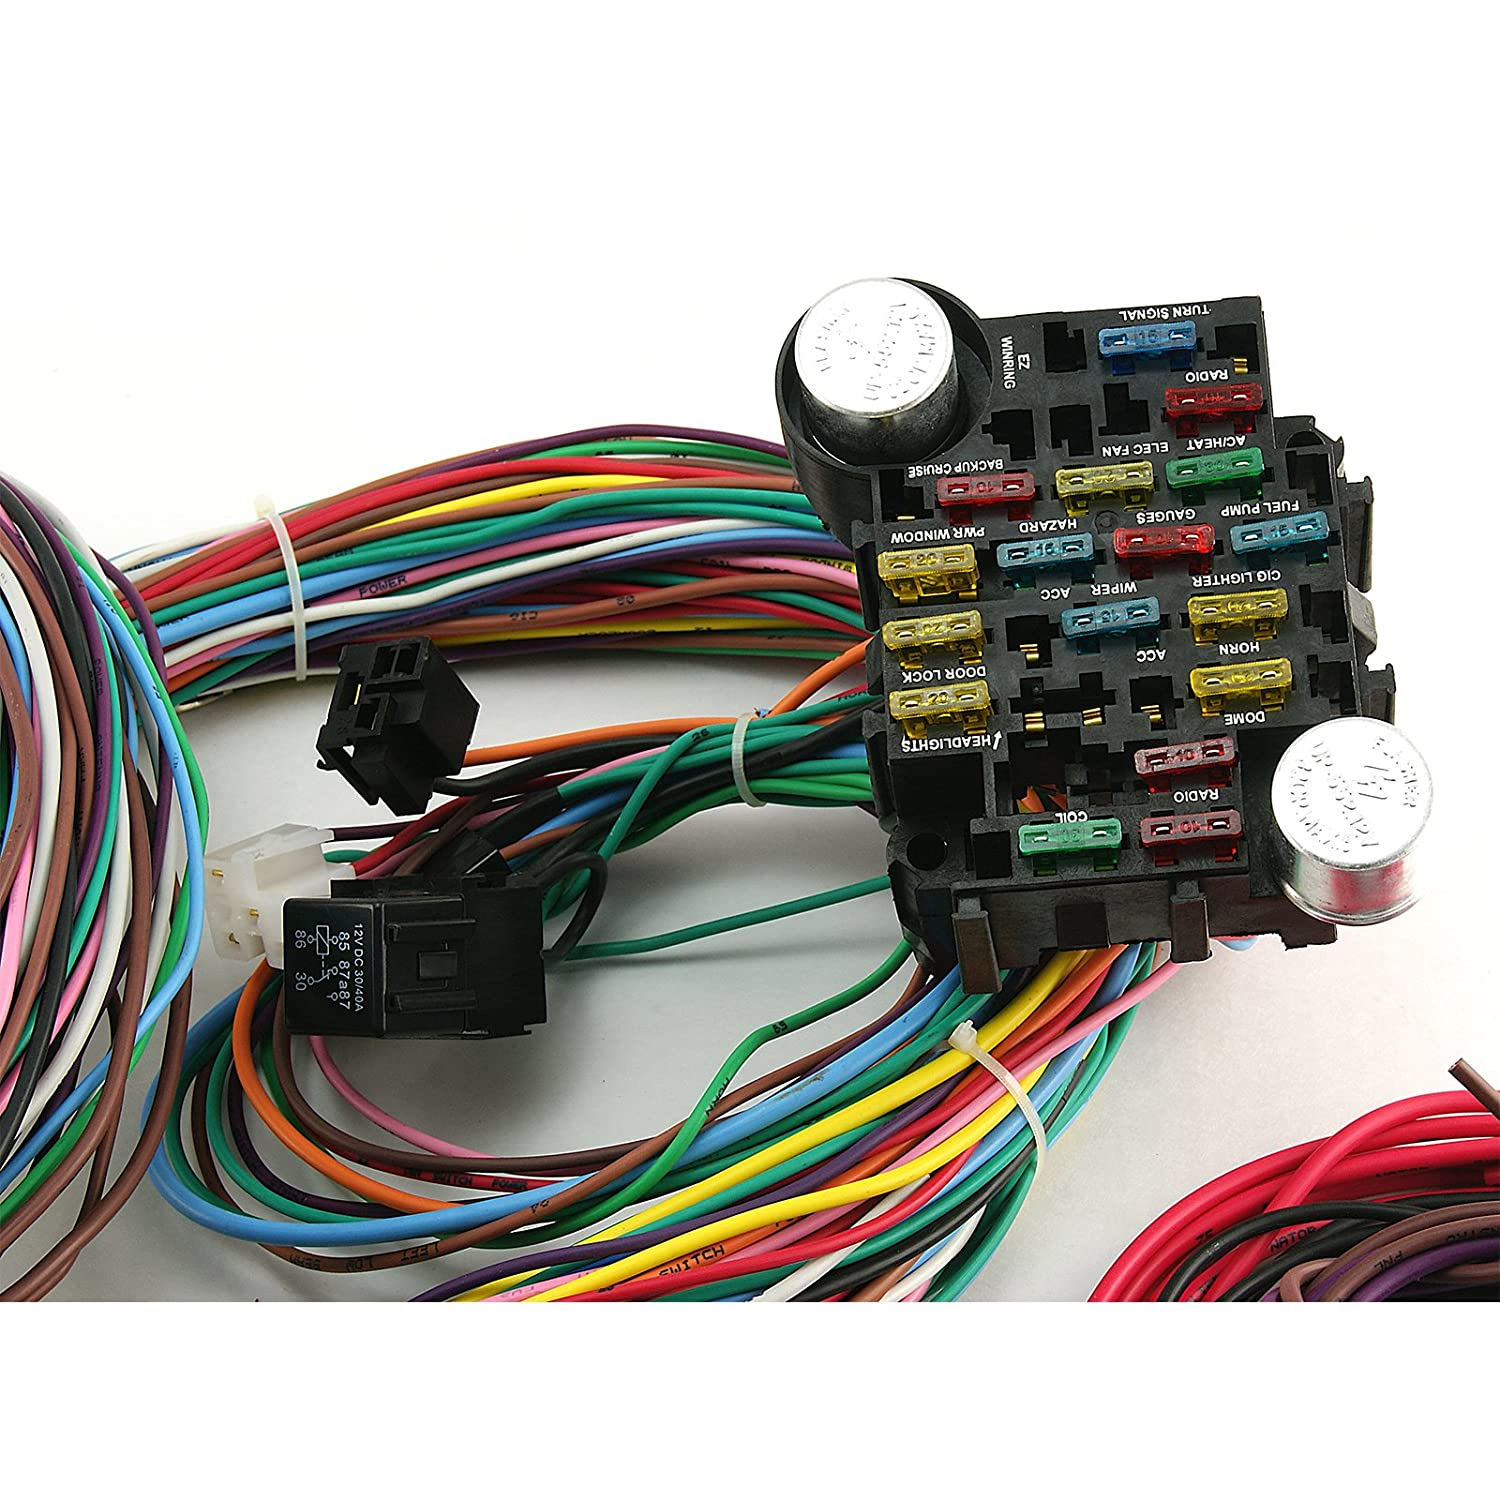 Ez Street Rod Wiring Harness Kit Electrical Diagrams 21 Circuits Speedway Circuit Diy Enthusiasts U2022 Hot Turn Signal Switch